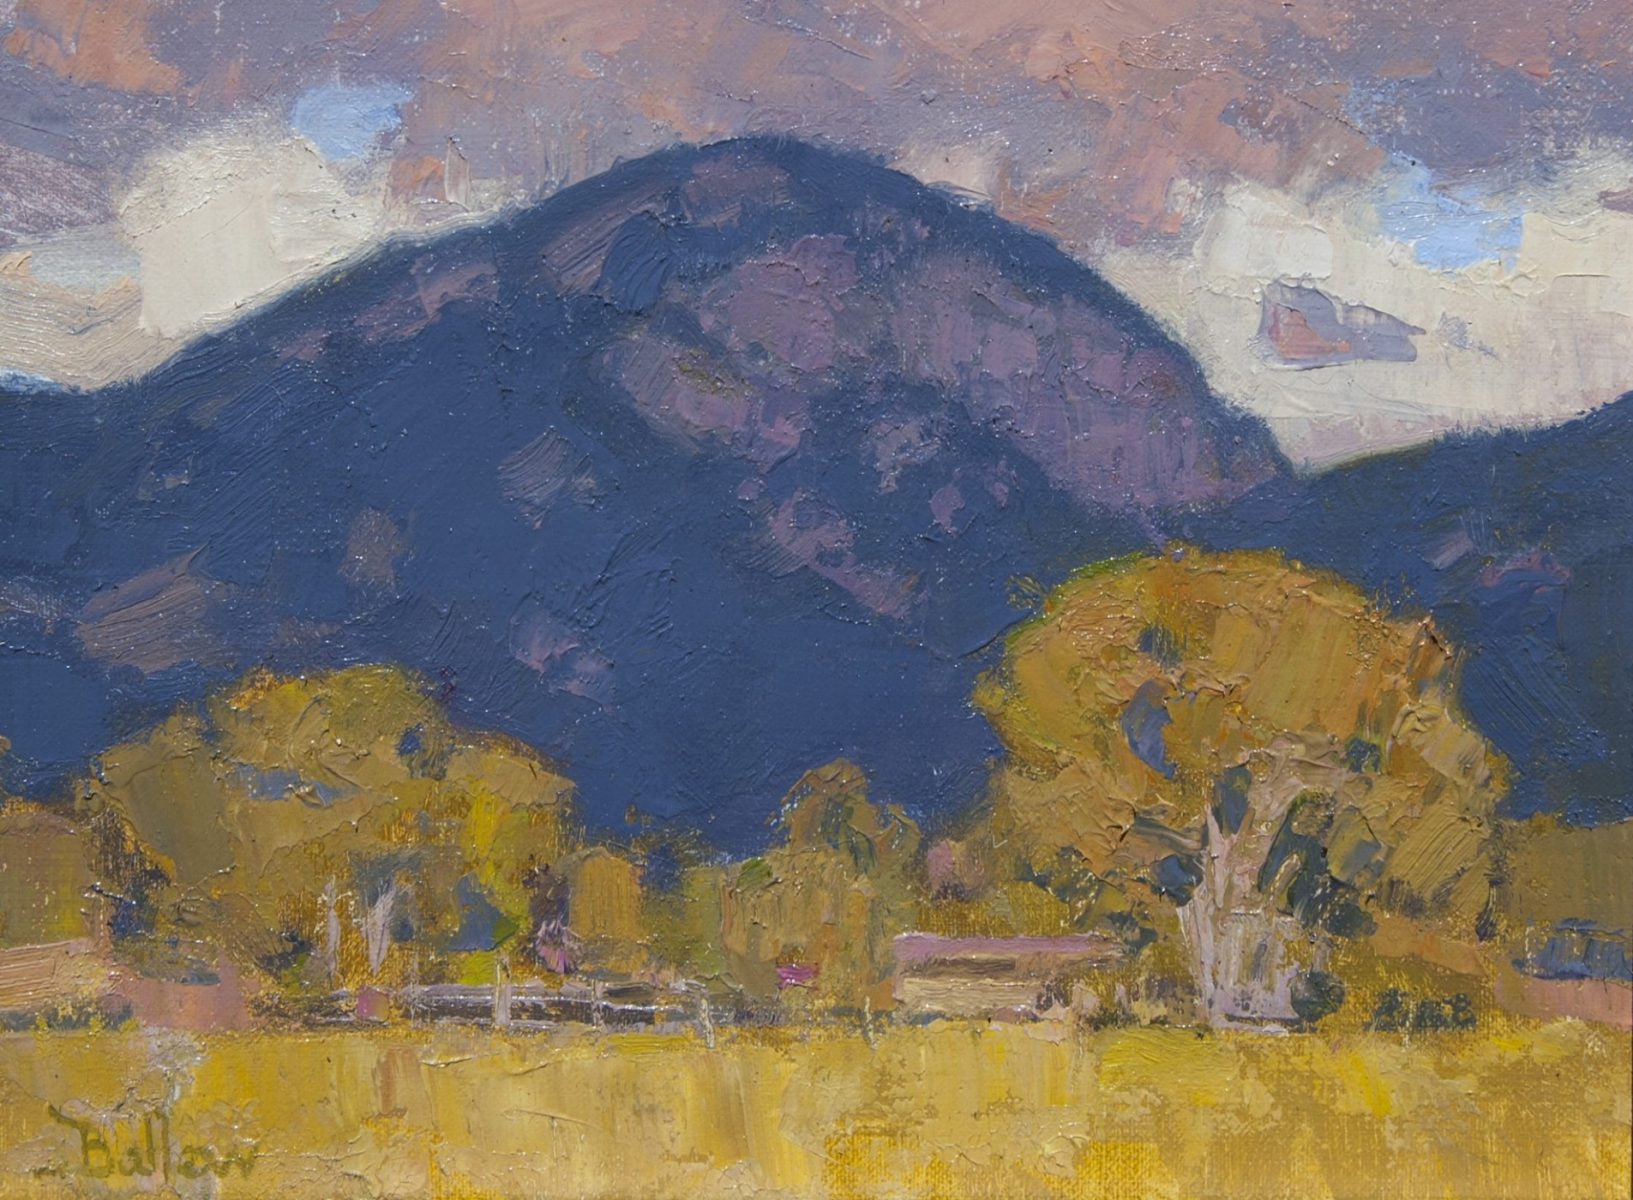 Lucero Peak in Shadow painting by David Ballew